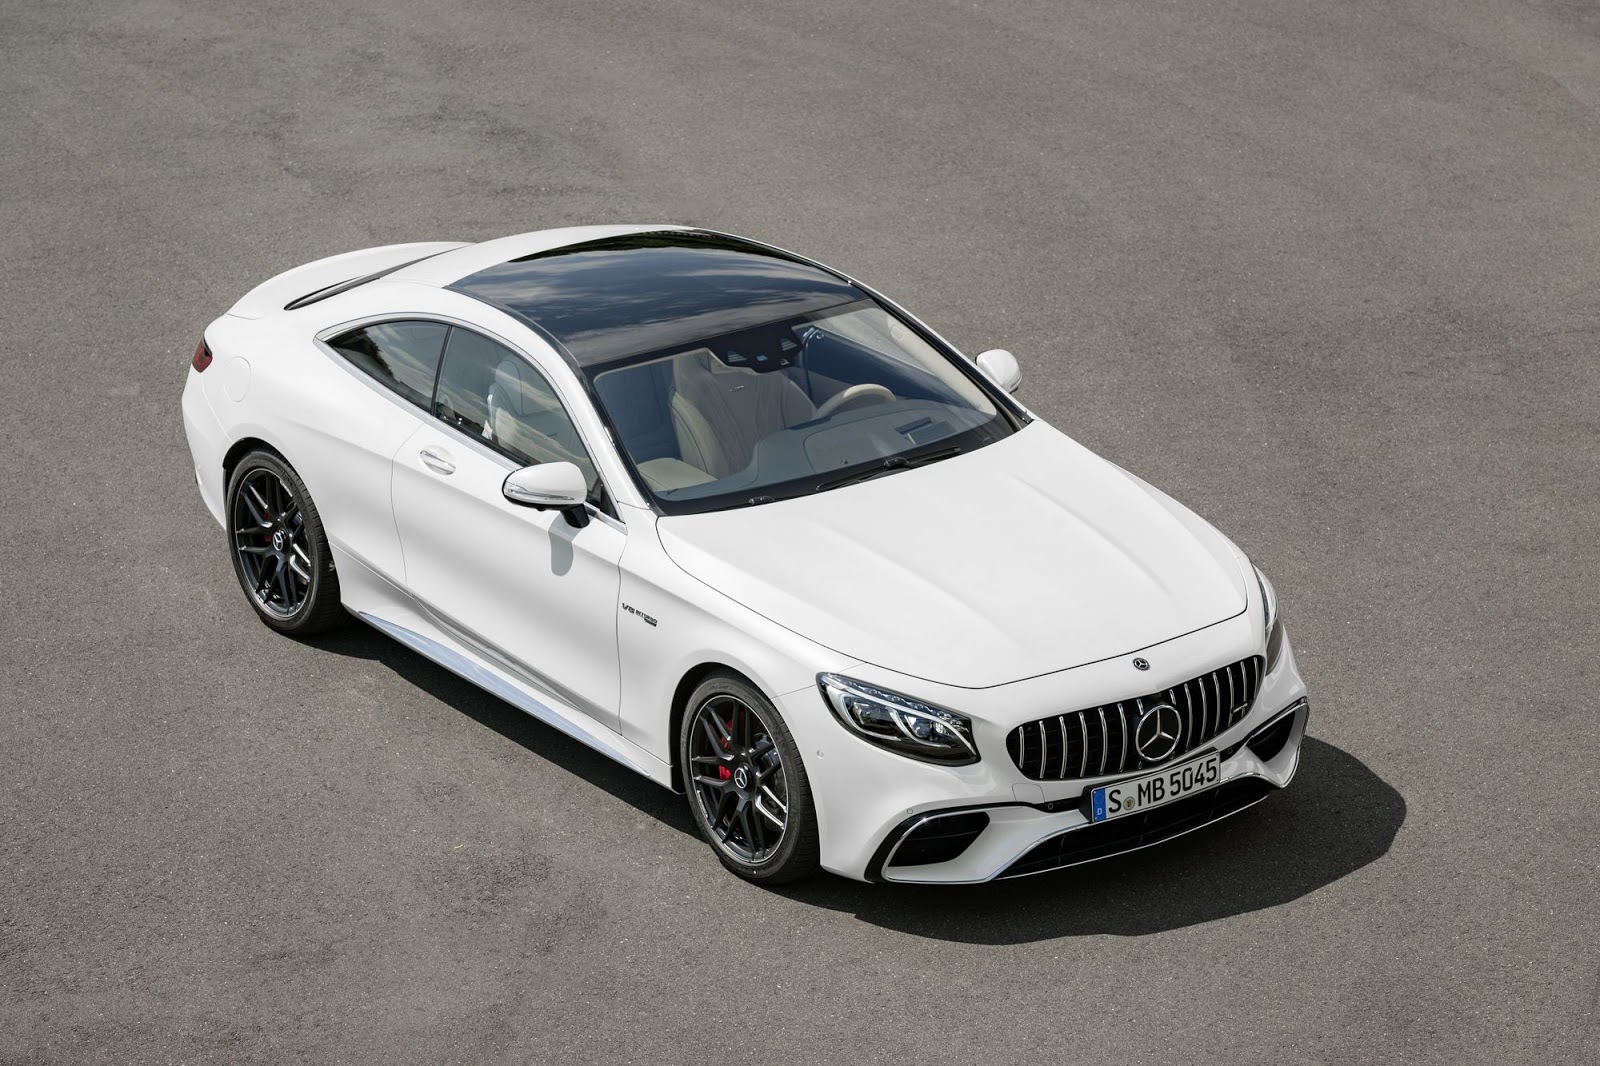 2018 mercedes amg s63 s65 coupe and cabrio get nip and tuck carscoops. Black Bedroom Furniture Sets. Home Design Ideas